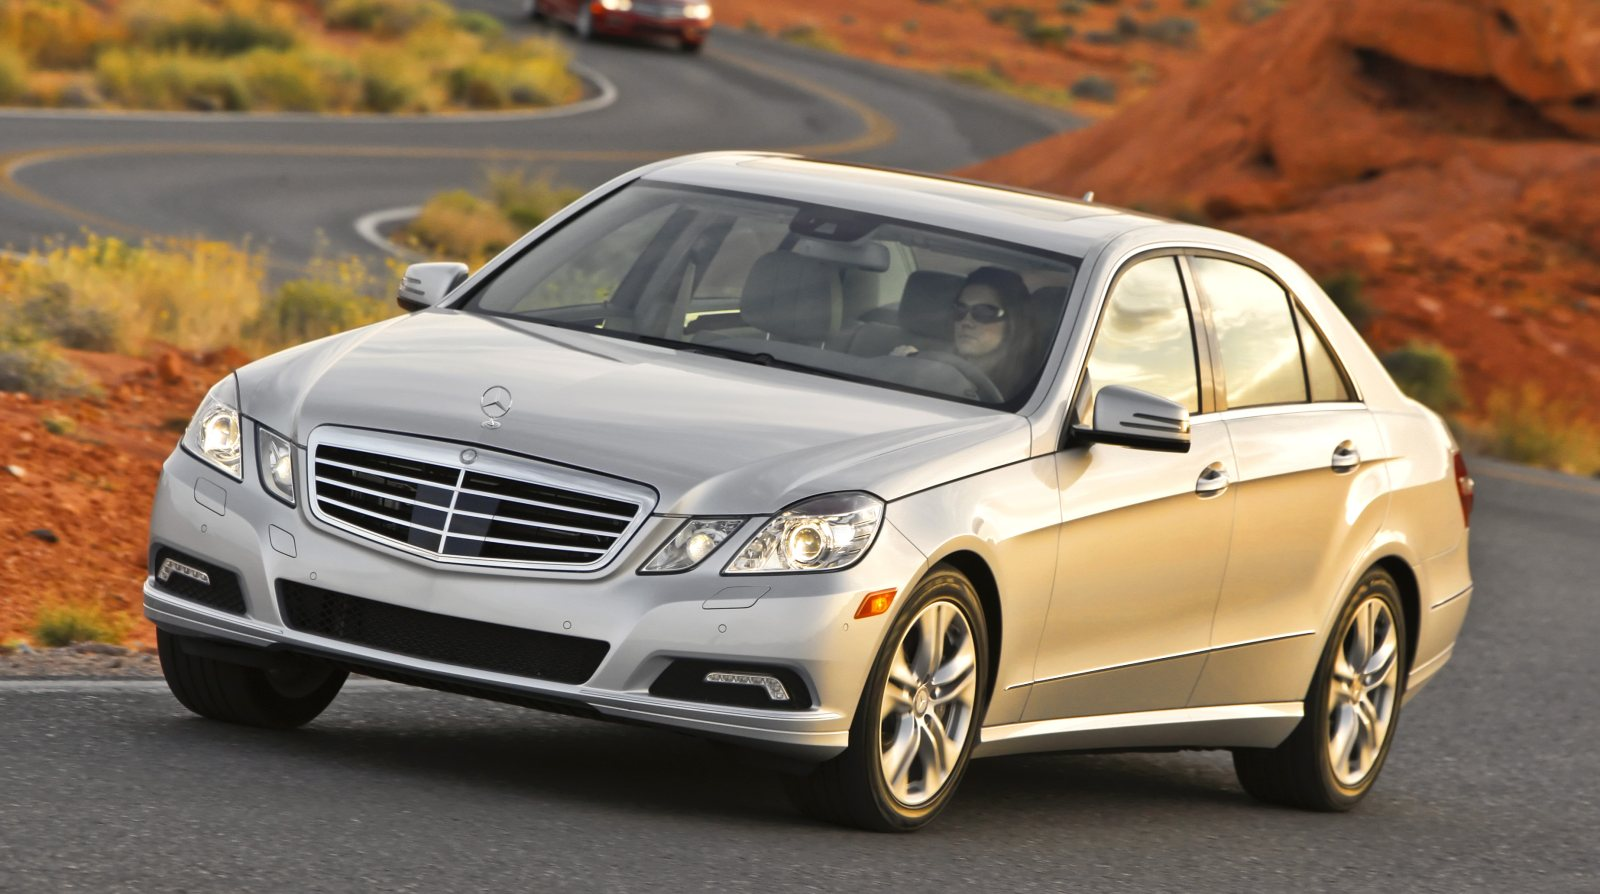 2012 mercedes benz e550 sedan gets standard 4matic awd only for 2012 mercedes benz e550 coupe review